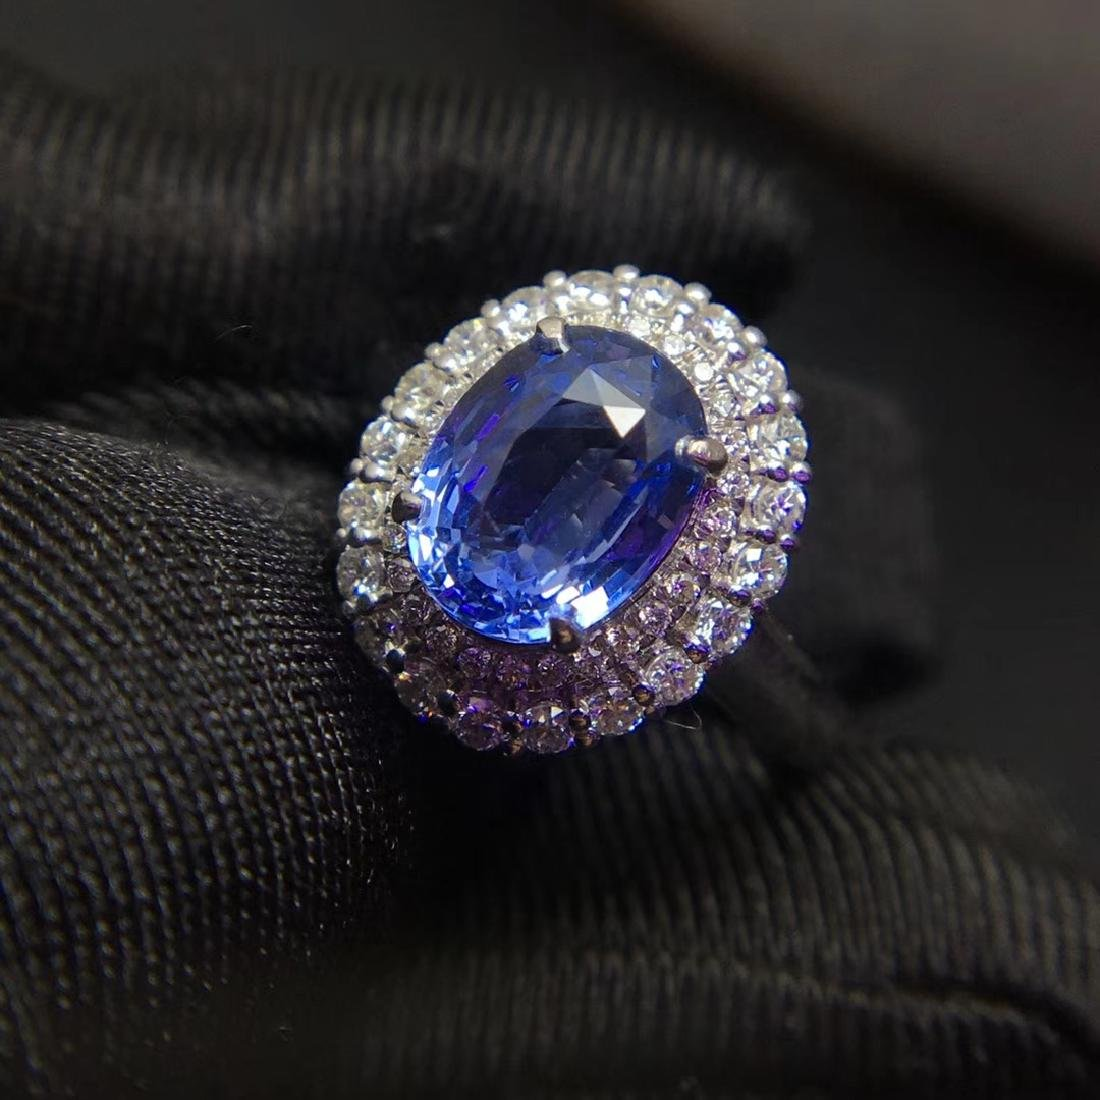 2.59ct Sapphire Ring in 18kt White Gold - 5